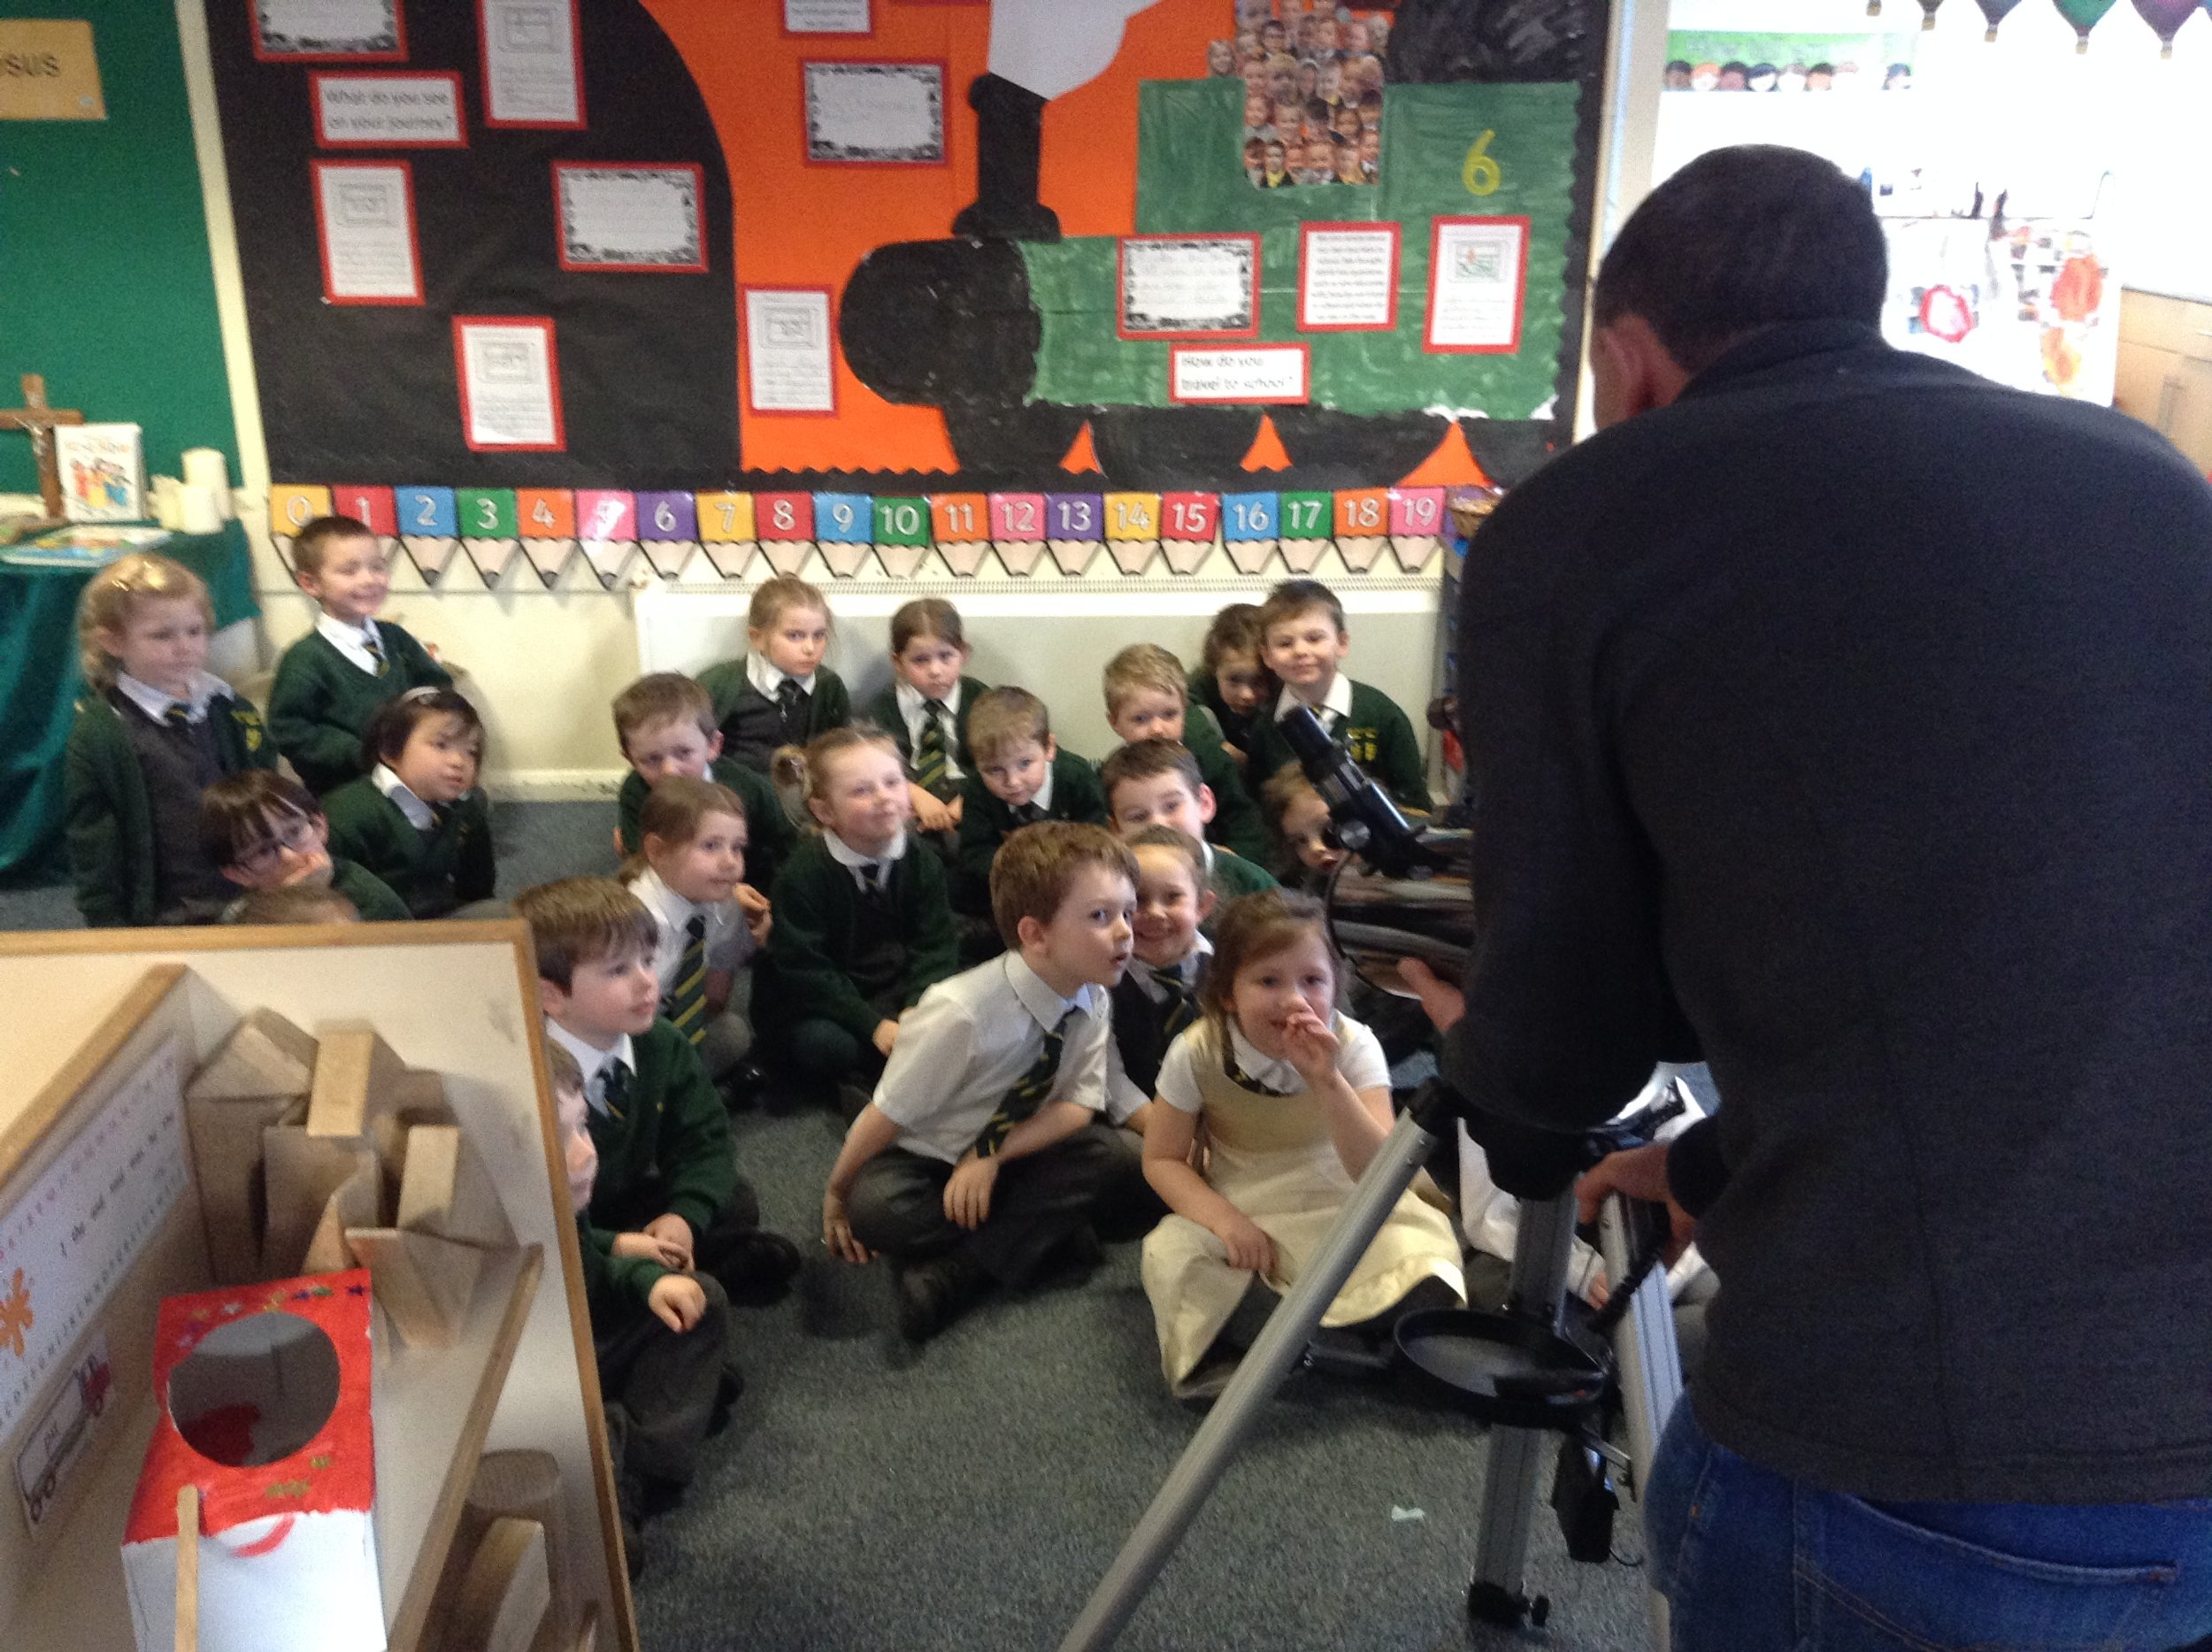 Mr Wright showing us how to use the Telescope.